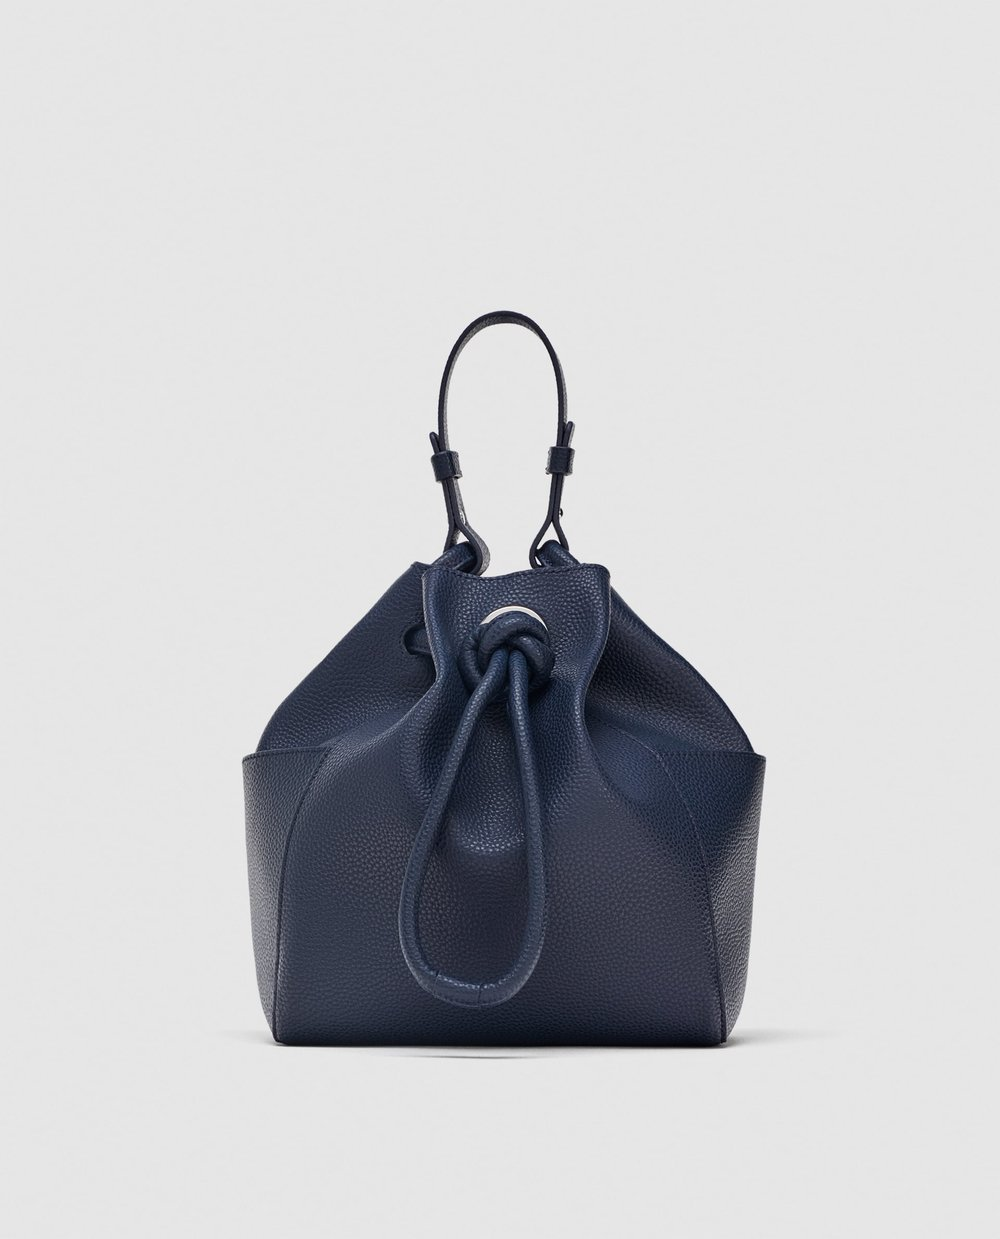 Zara Knotted Bag